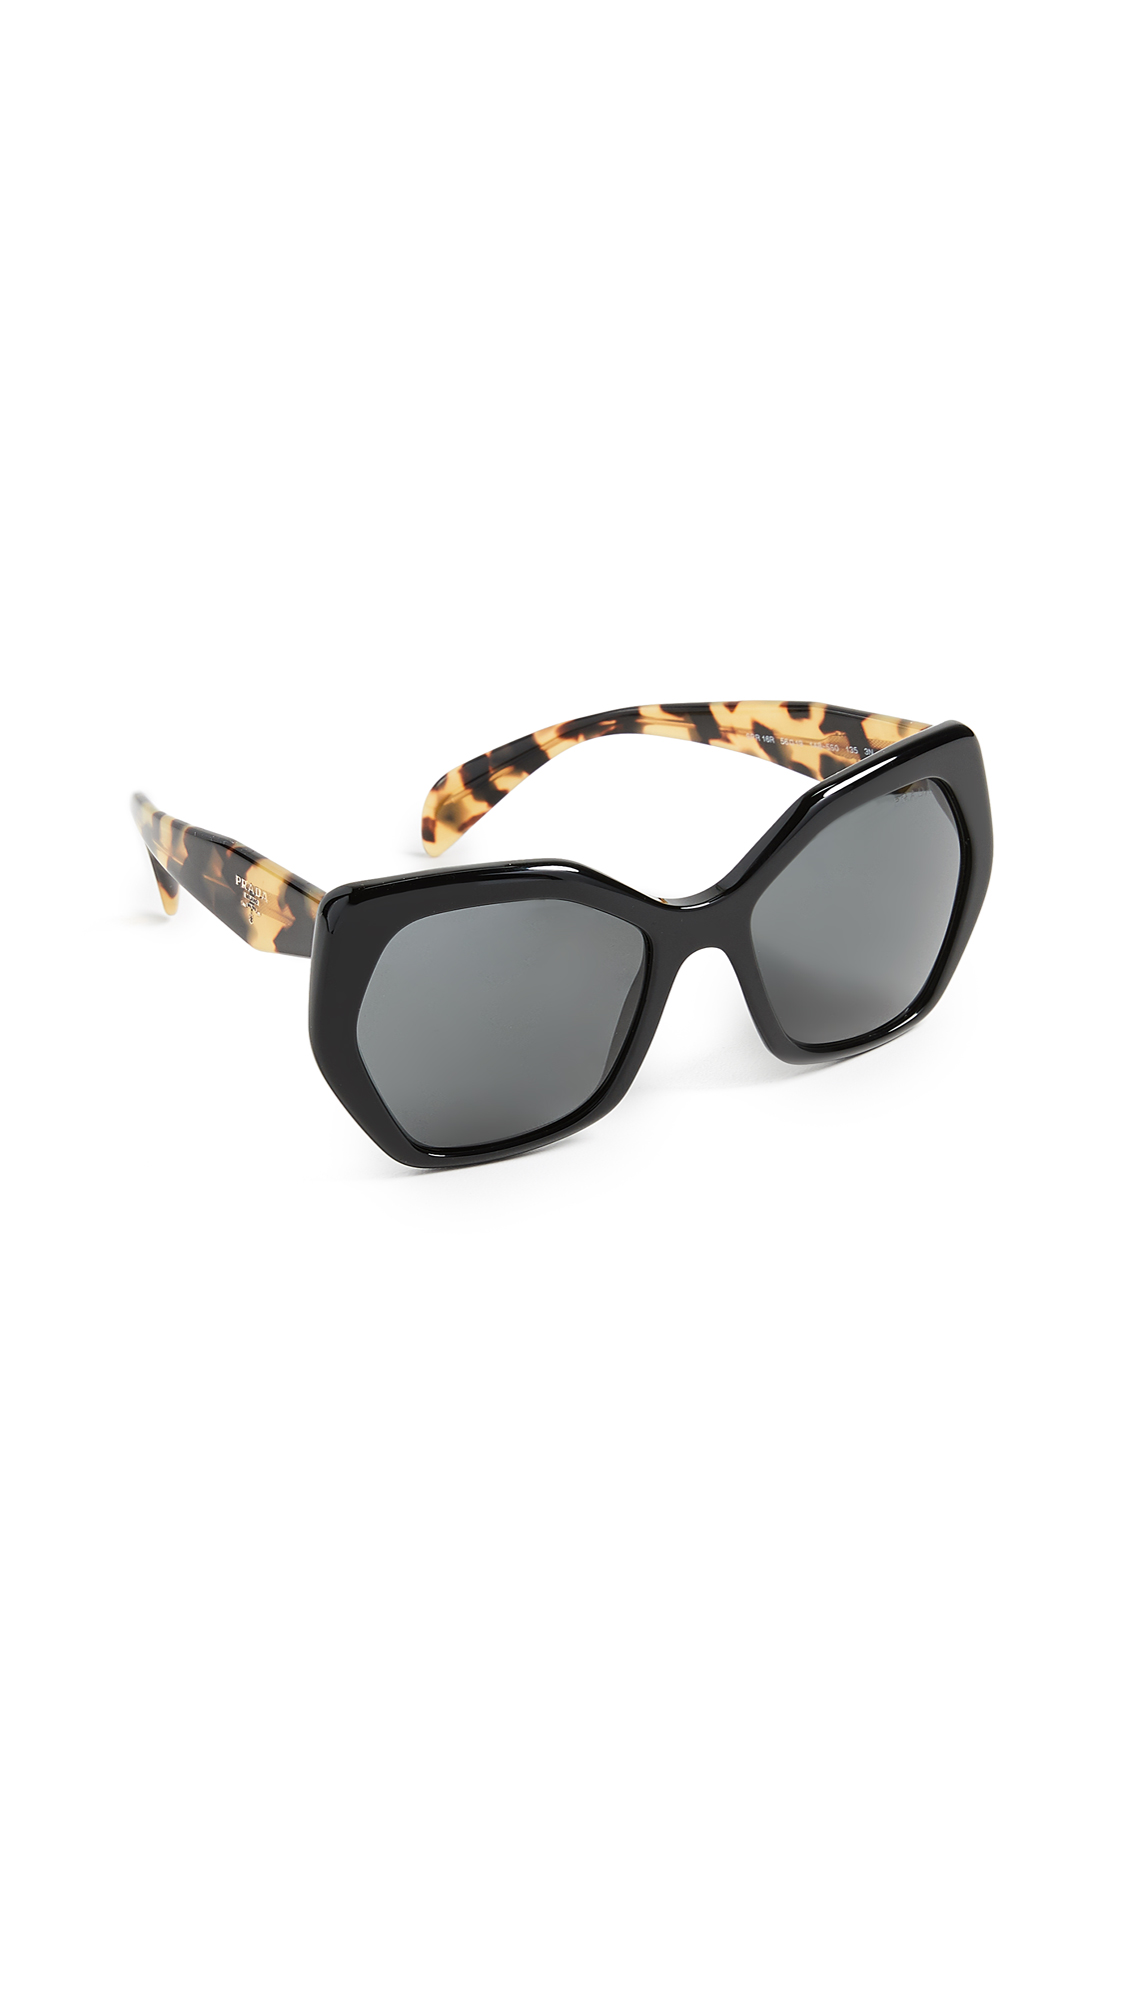 Prada Oversized Geometric Sunglasses In Black/Grey